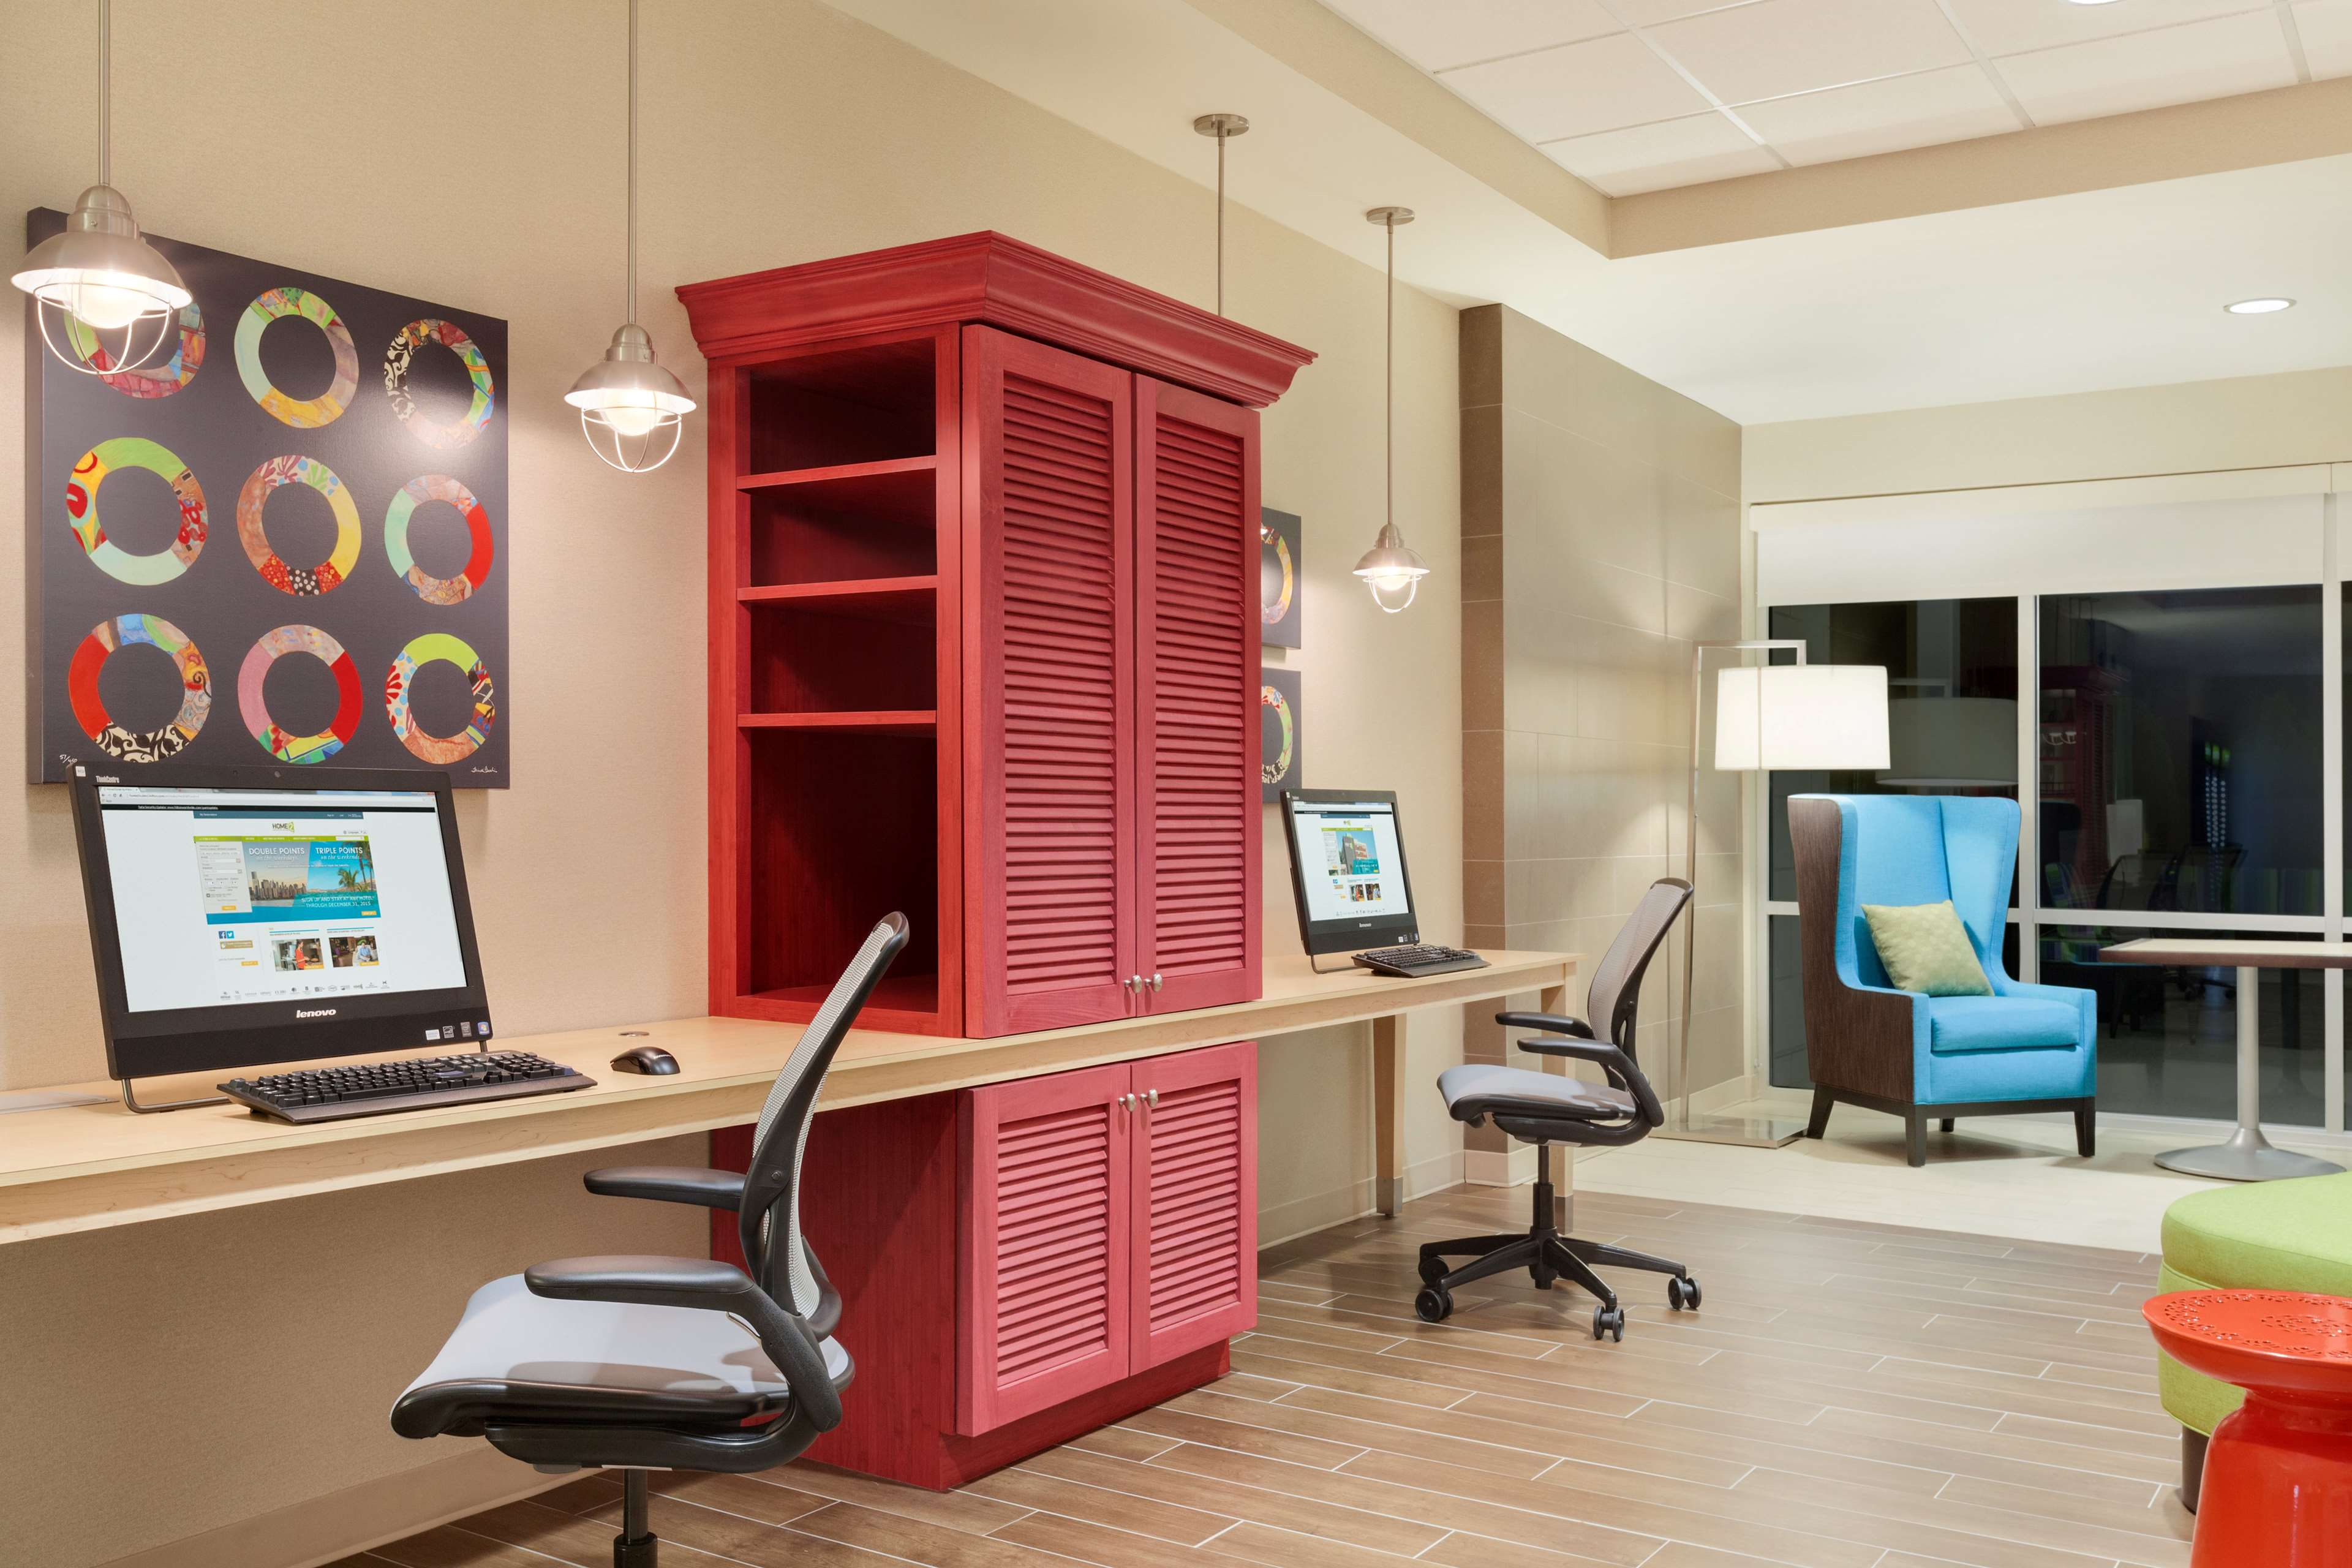 Home2 Suites By Hilton Youngstown West - Austintown image 19